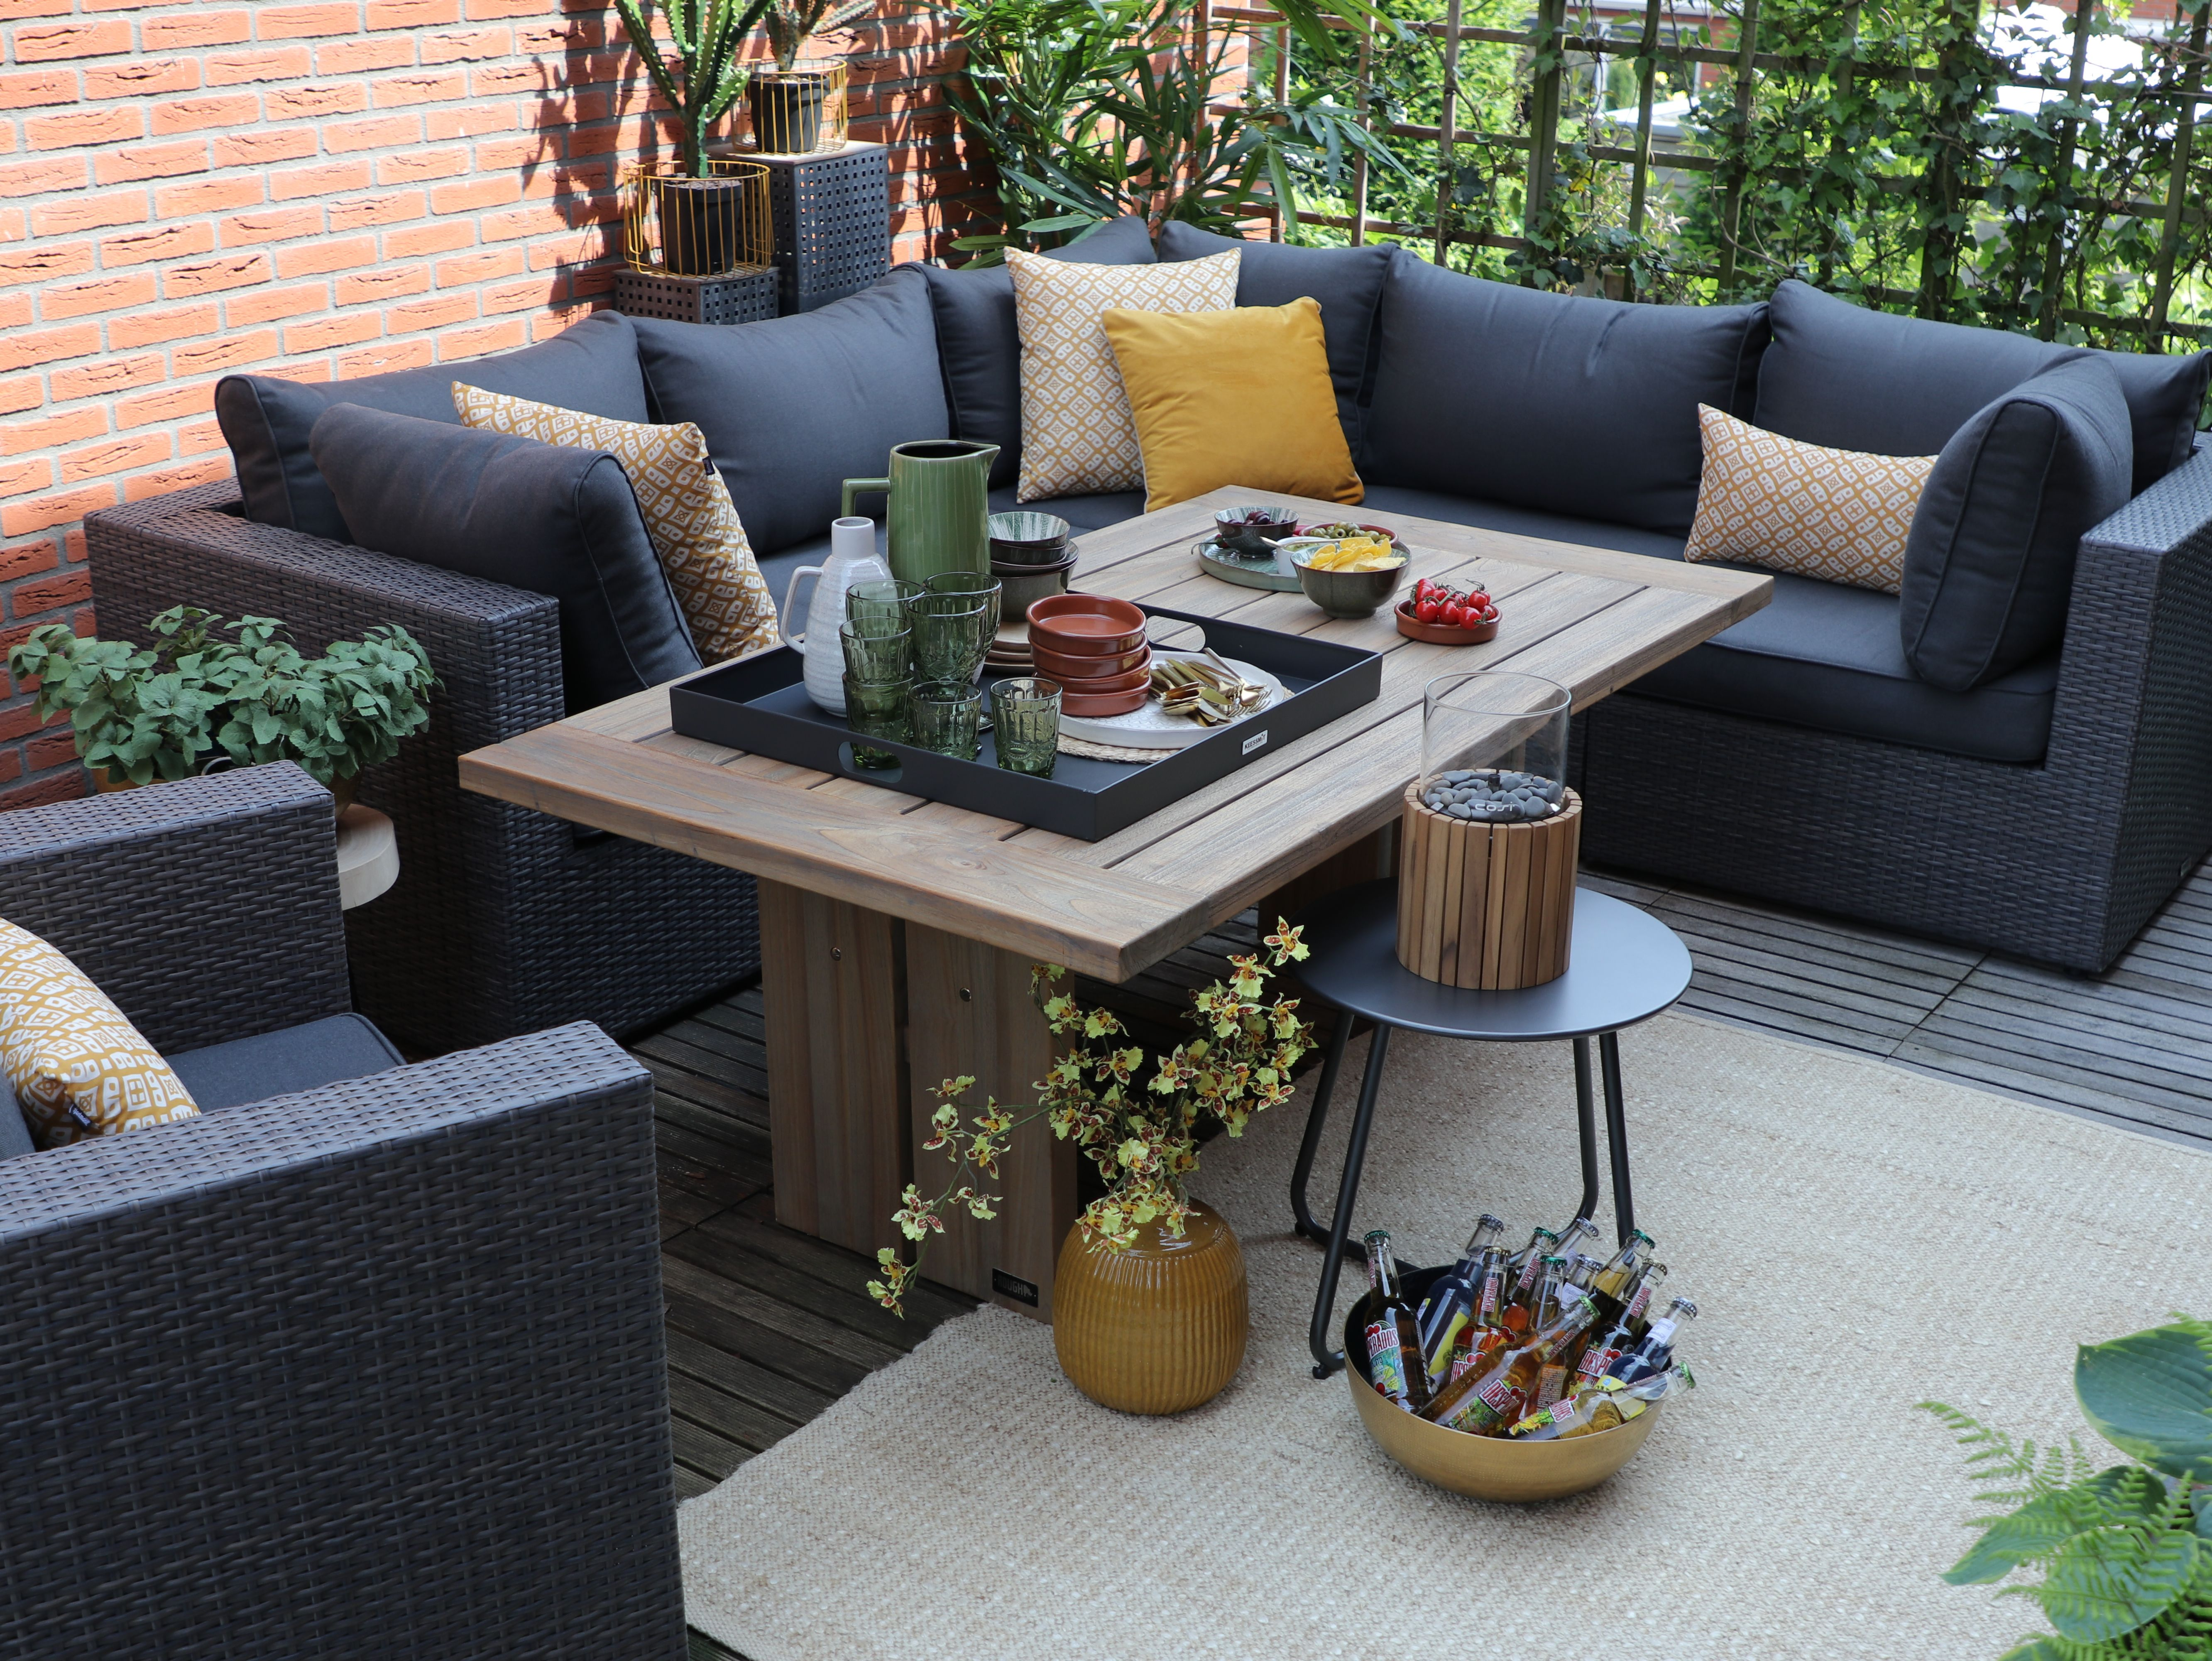 Launch Möbel Terrasse Lounge-sets | Gartenmöbel Sets, Terasse Möbel, Haus Deko